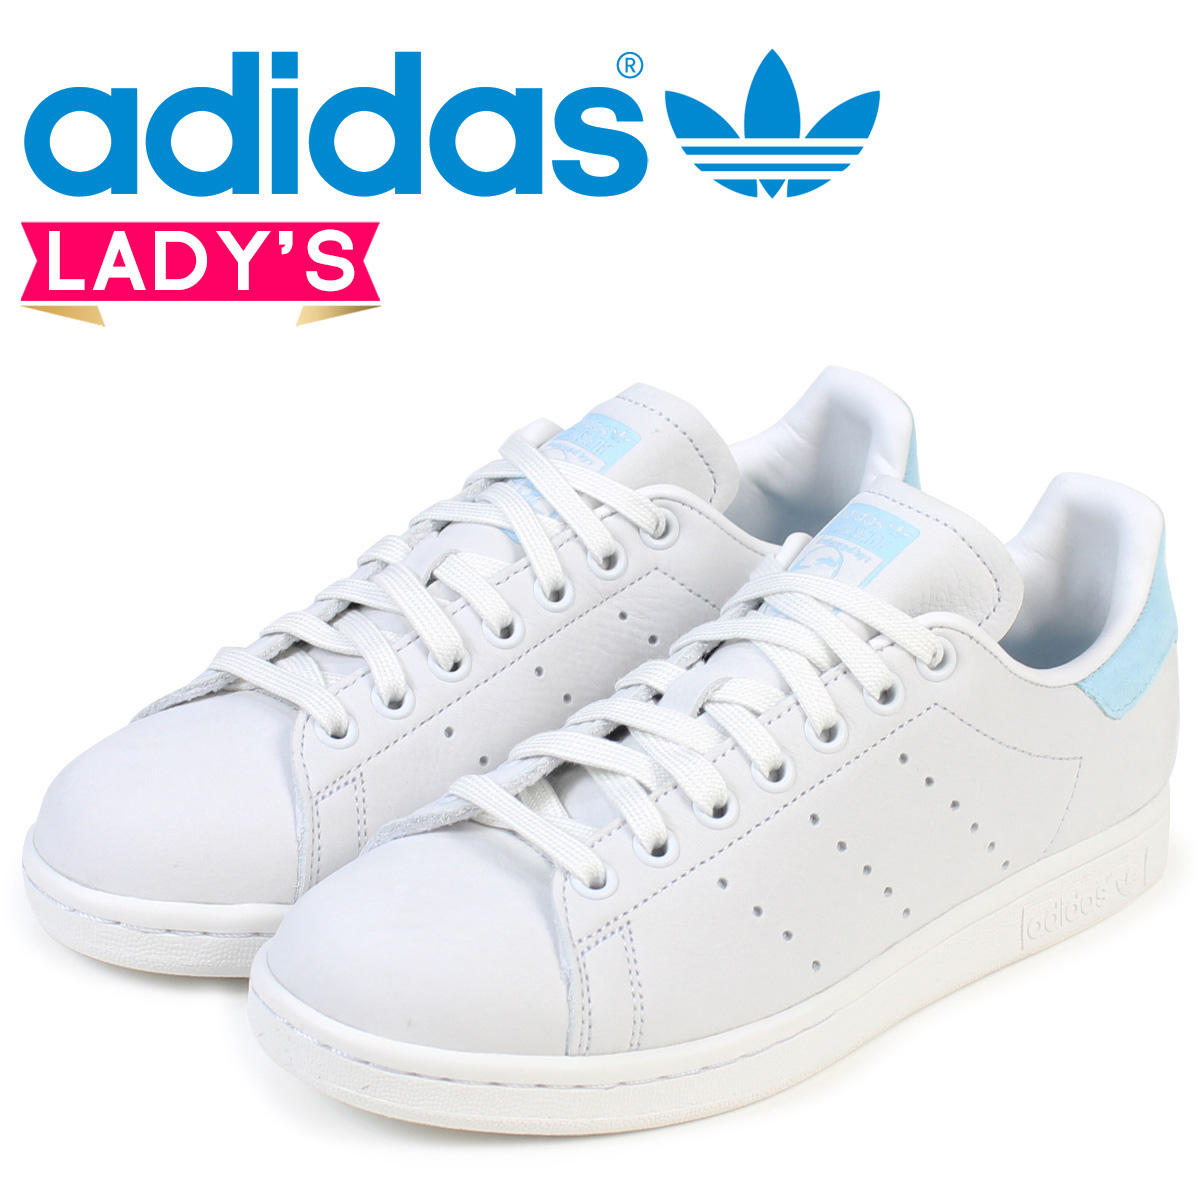 adidas Originals Stan Smith Lady's Adidas sneakers STAN SMITH W BZ0390 shoes  white [load planned Shinnyu load in reservation product 10/6 containing]